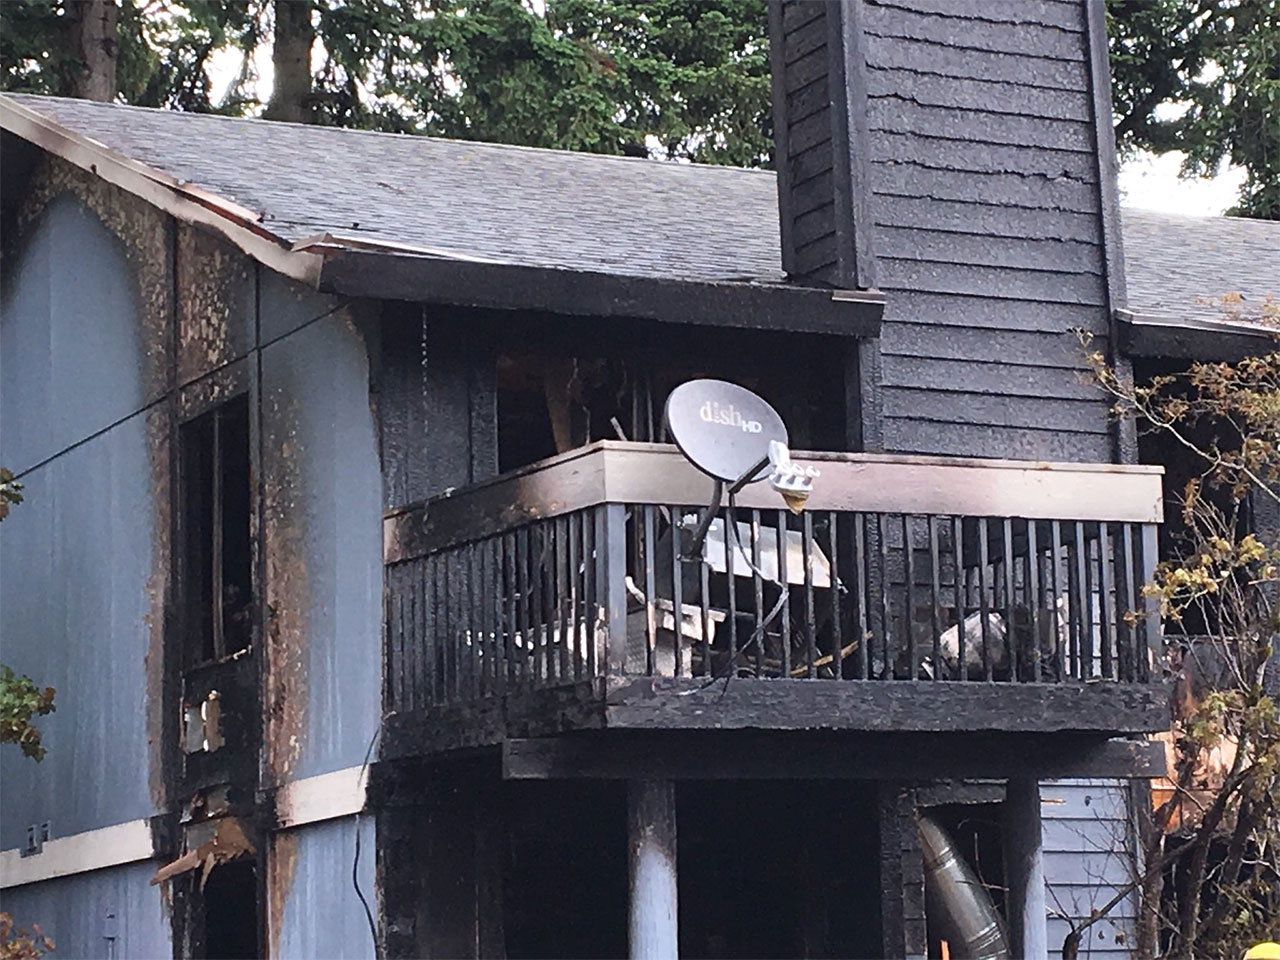 Crews bring the fire under control at a Federal Way apartment building. (KOMO News photo)